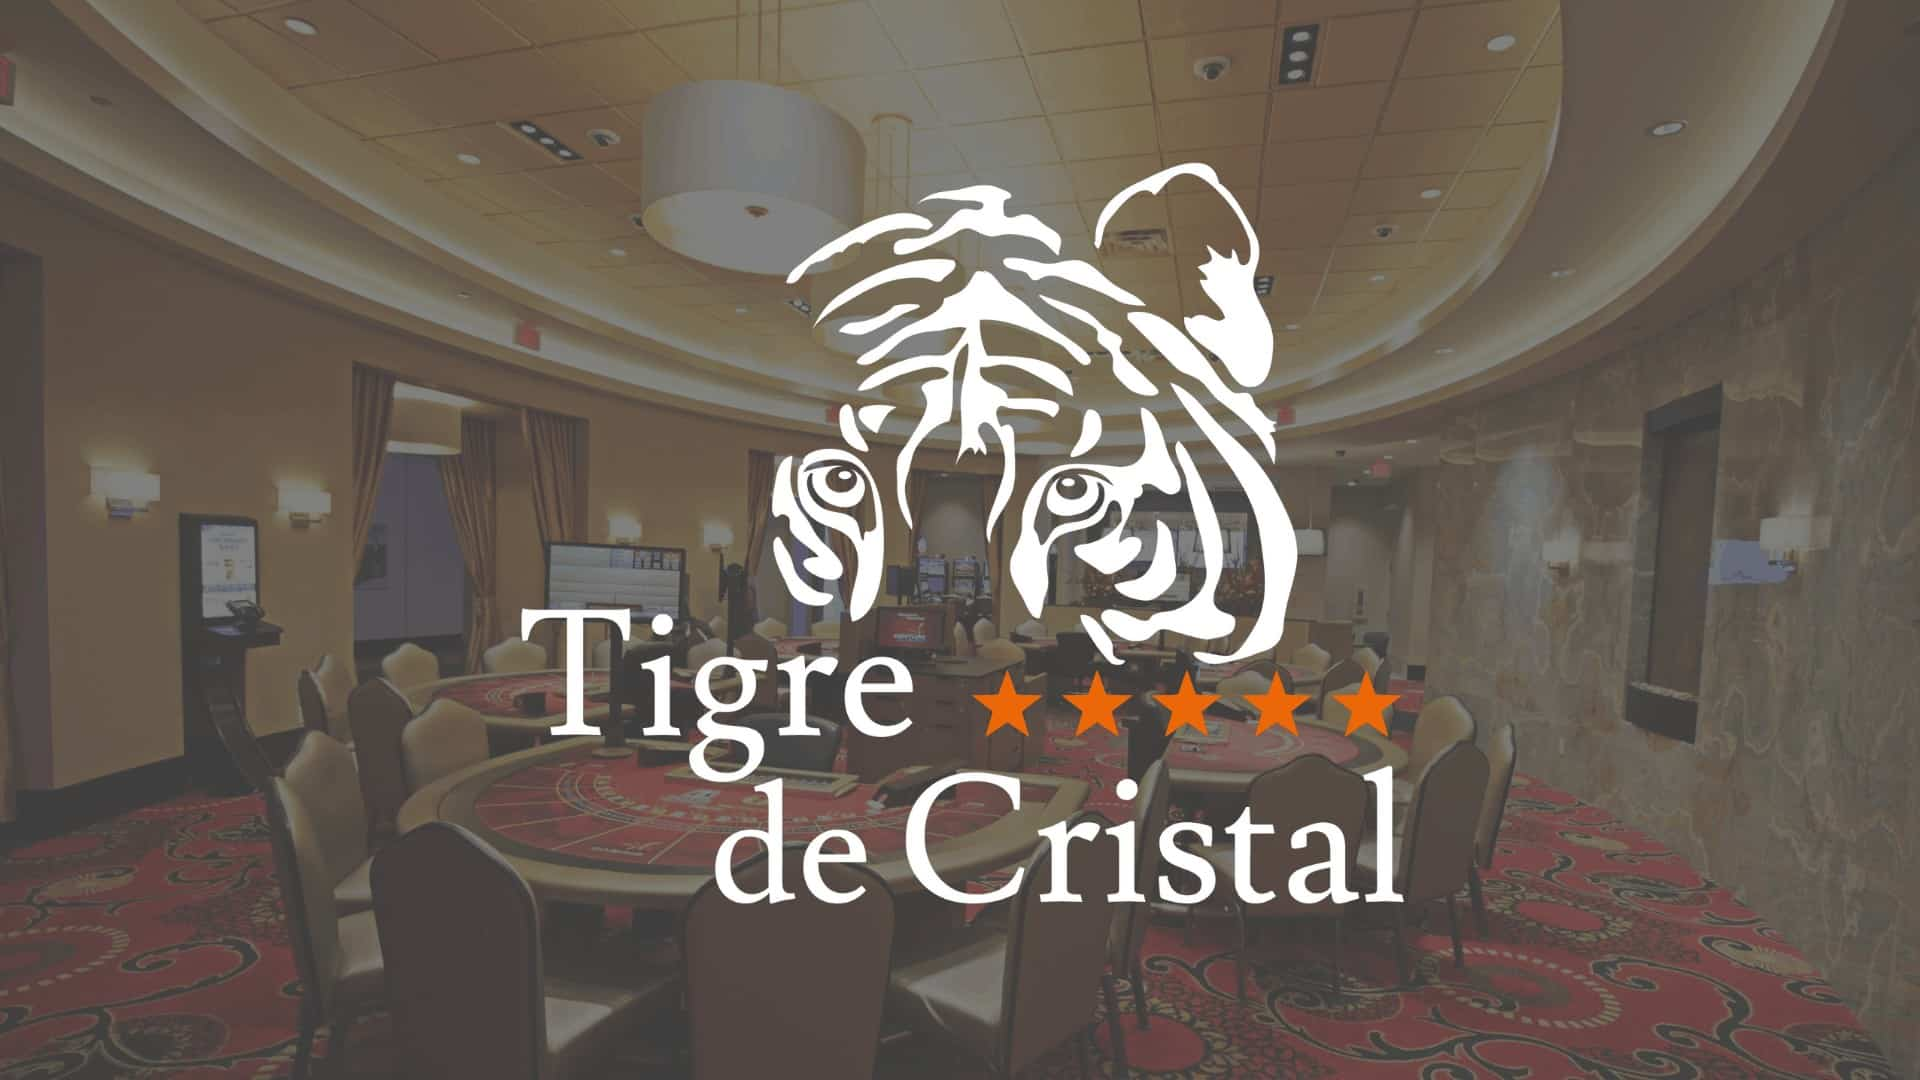 Photo of Russia's Casino Tigre de Cristal Surges VIP Slots